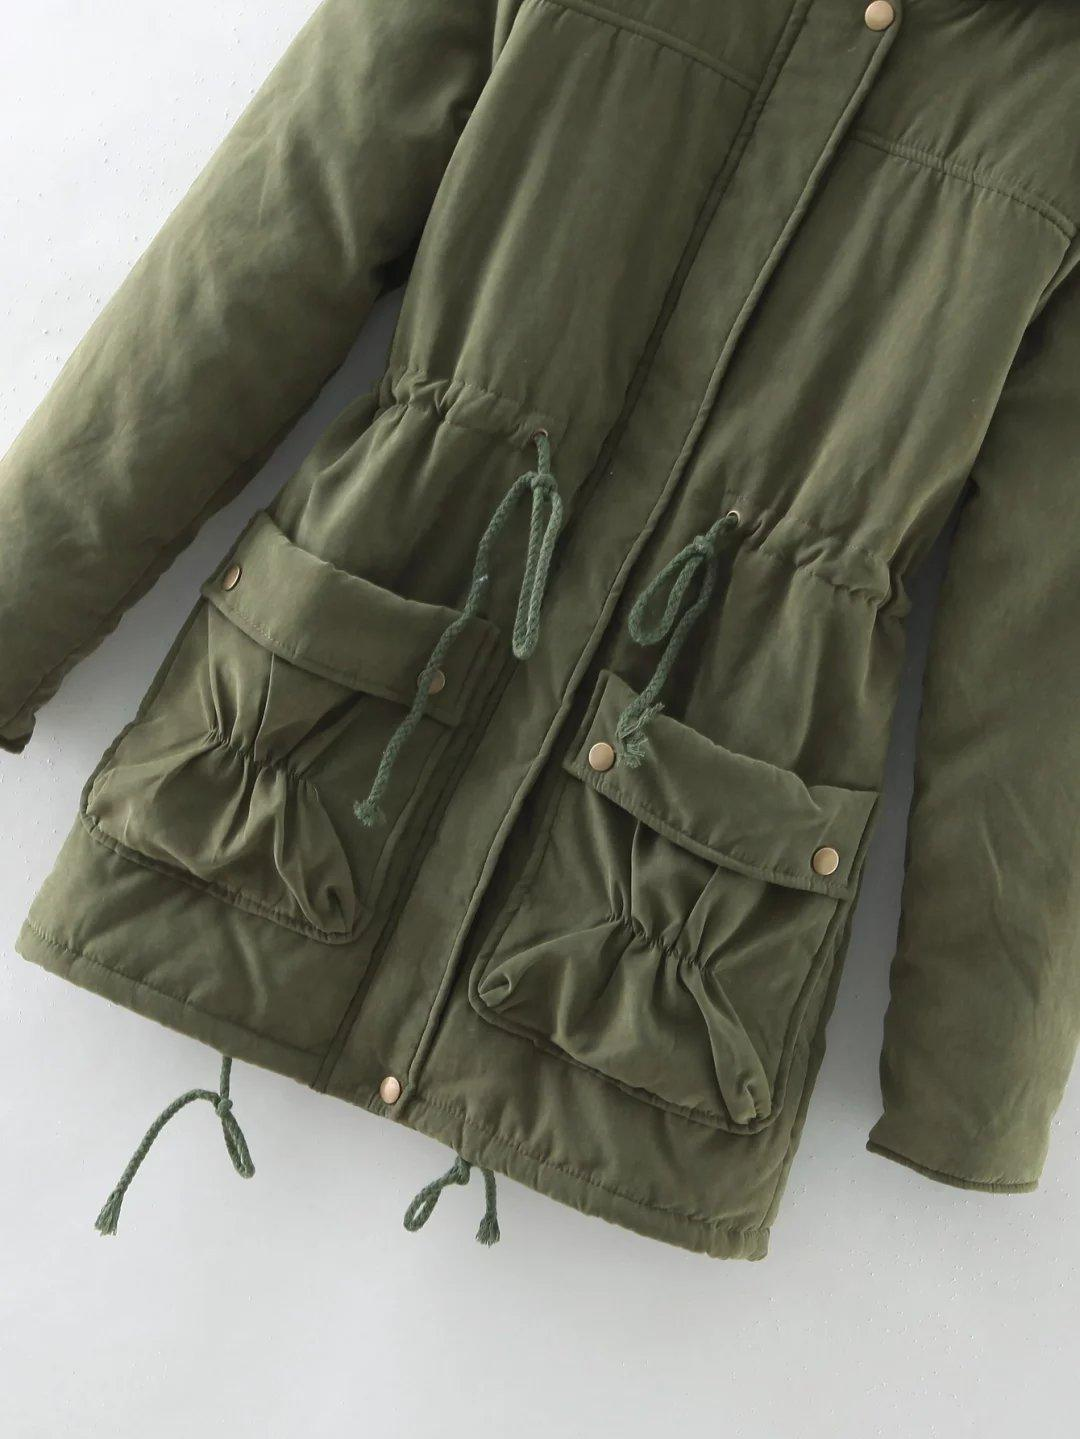 New 2017 Winter Women Jackets Cotton Padded Coat Medium Long Slim Hooded Parkas Casual Wadded Quilt Snow Outwear Warm Overcoat